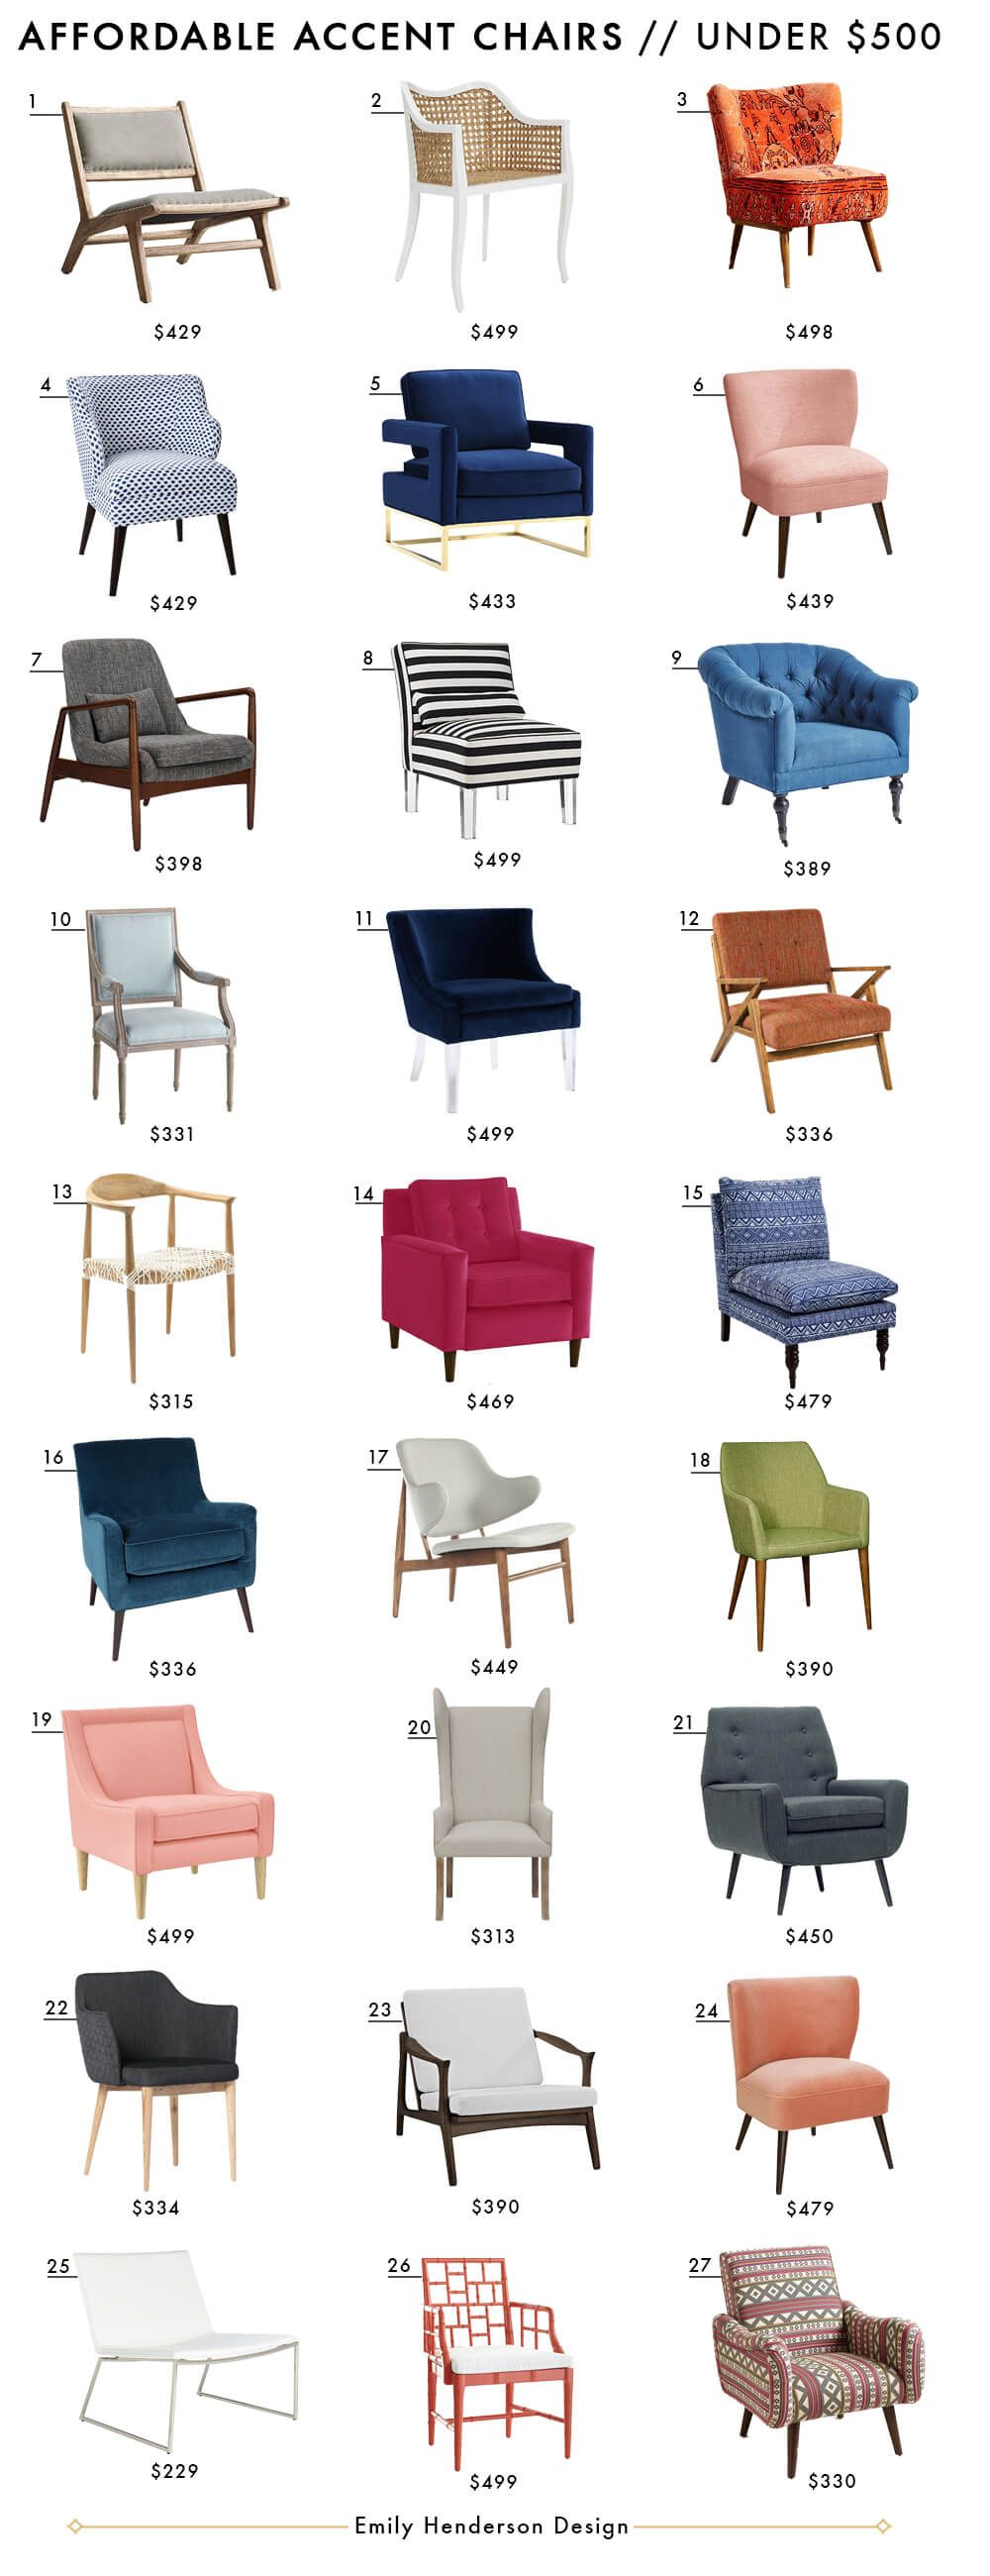 Best Affordable Accent Chair Roundup Trendy Home Decor 400 x 300